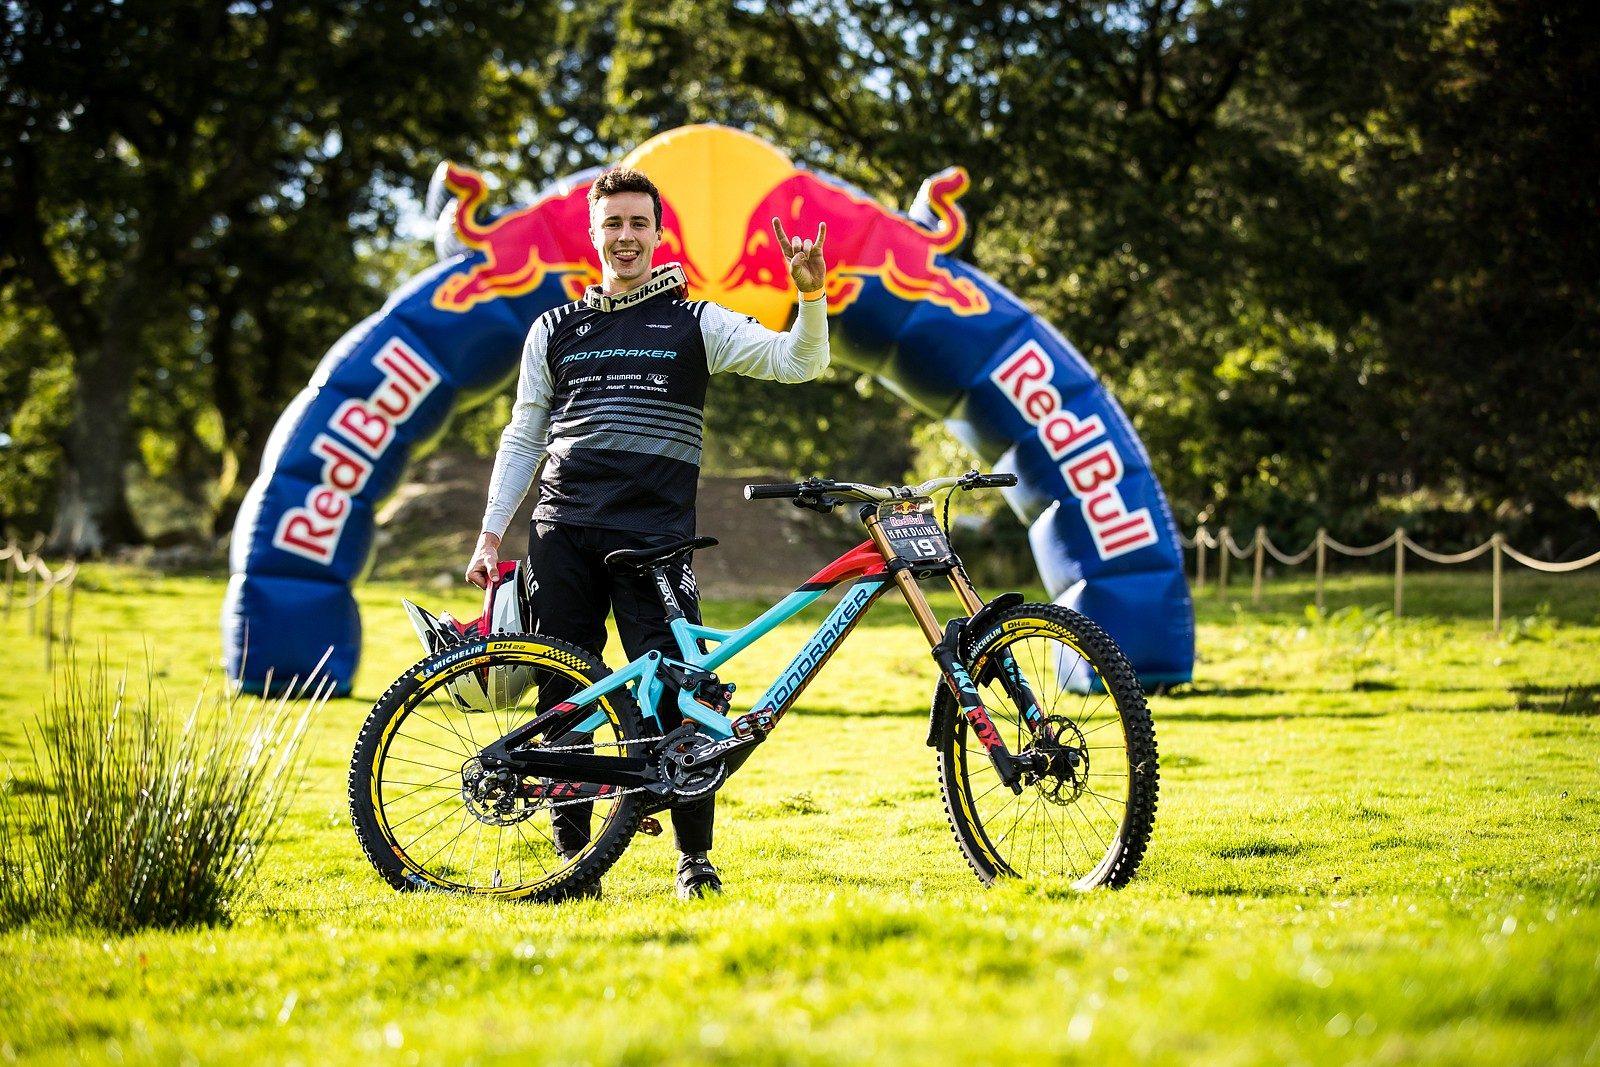 Thibaut Laly with his Mondraker Summum - The Bikes of Red Bull Hardline - Mountain Biking Pictures - Vital MTB